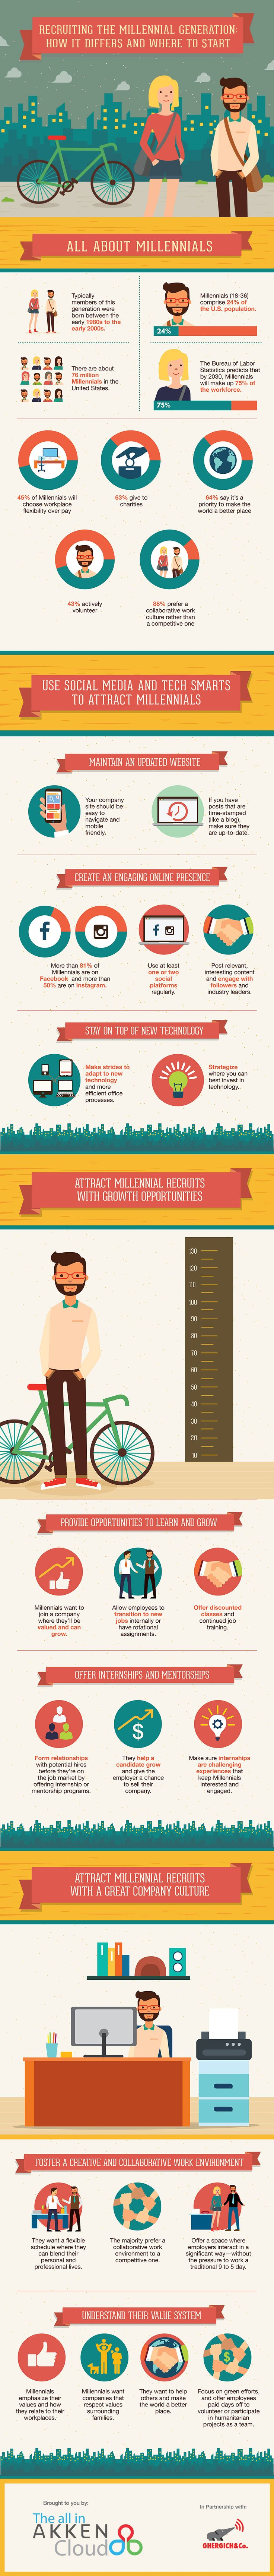 Recruiting the Millennial Generation: How it Differs and Where to Start #infographic #Millennials #Career